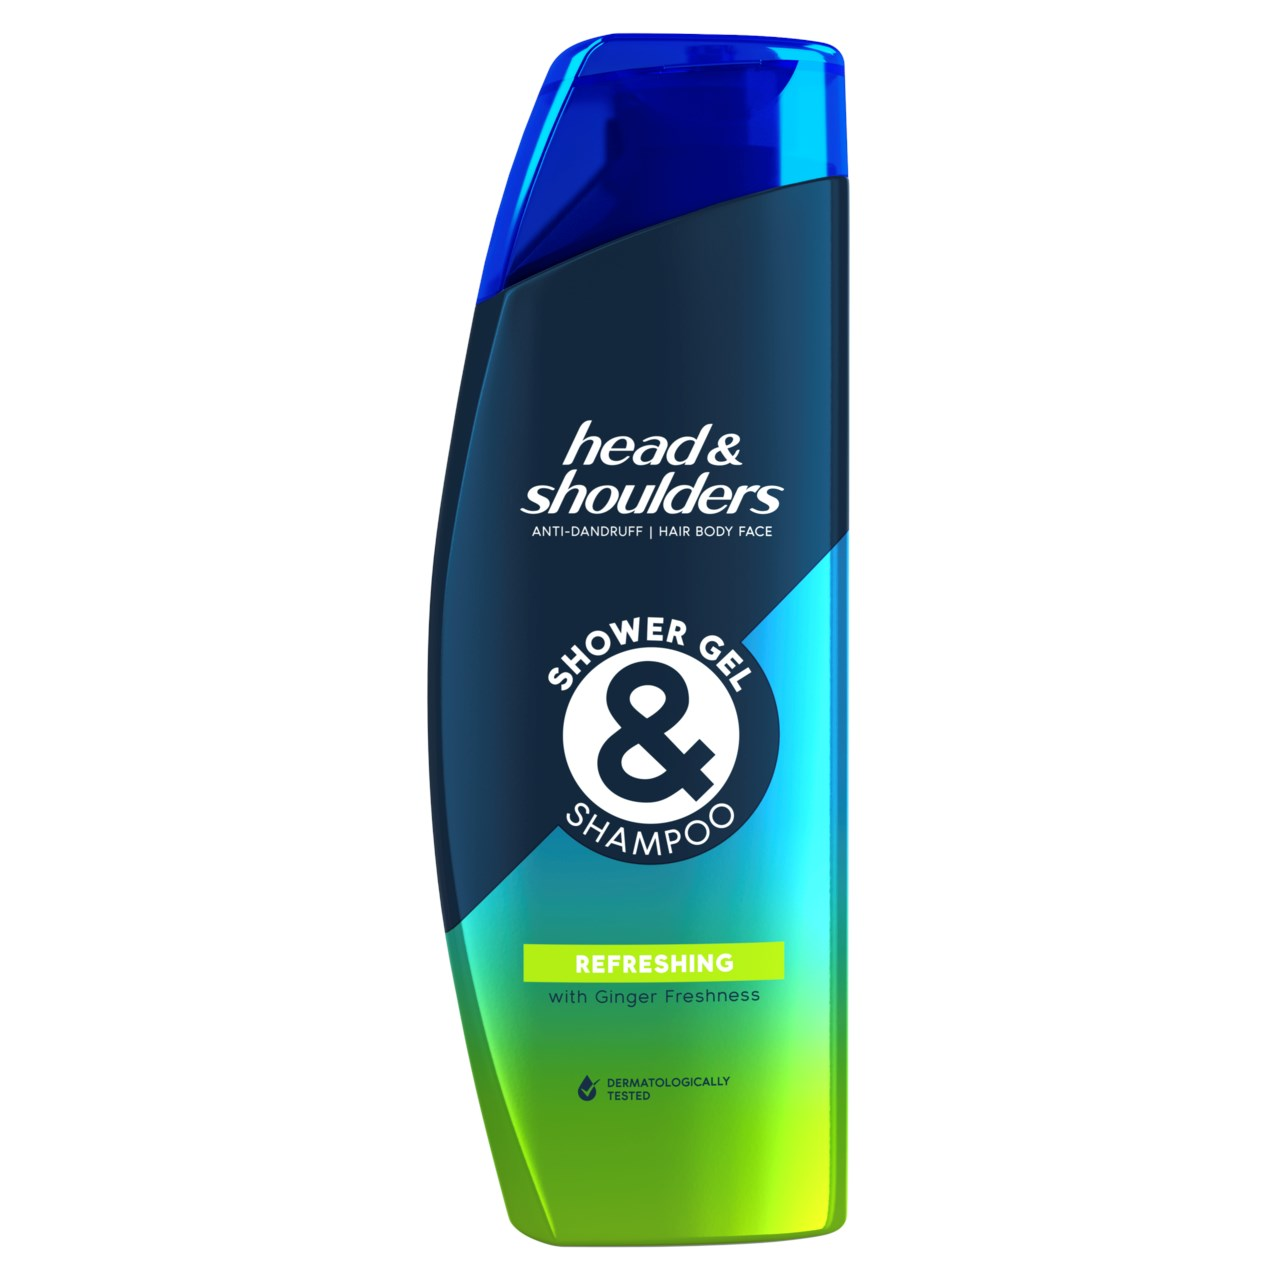 Head&Shoulders Refreshing sprchový gél 1x270 ml